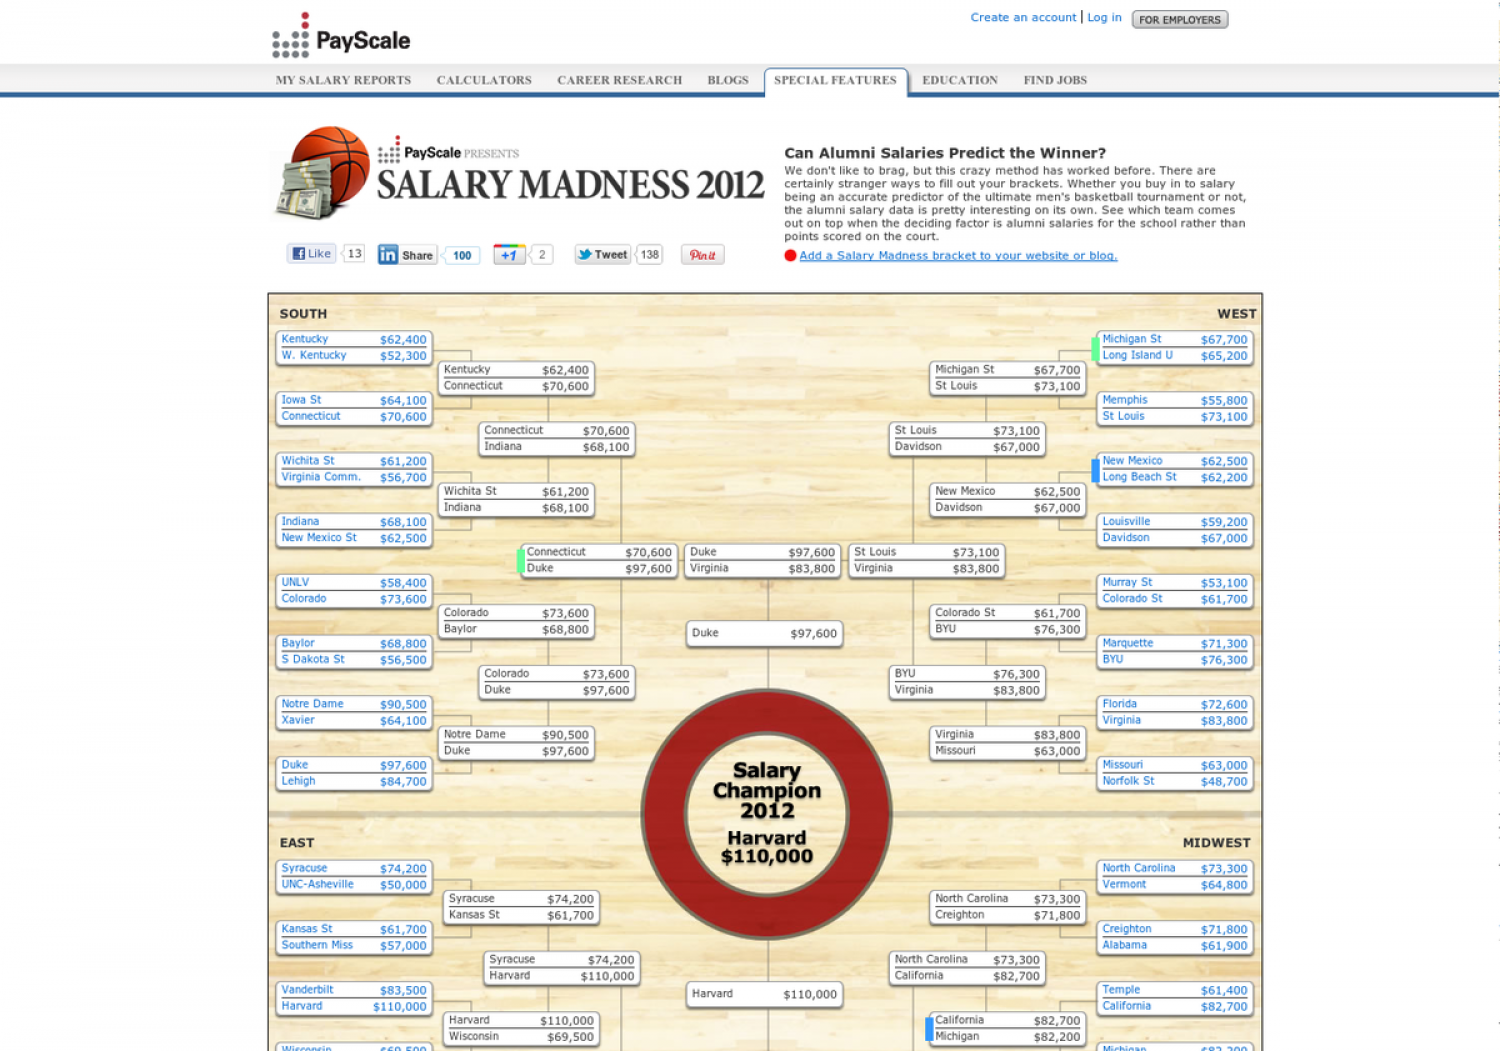 2012 PayScale Salary Madness Infographic